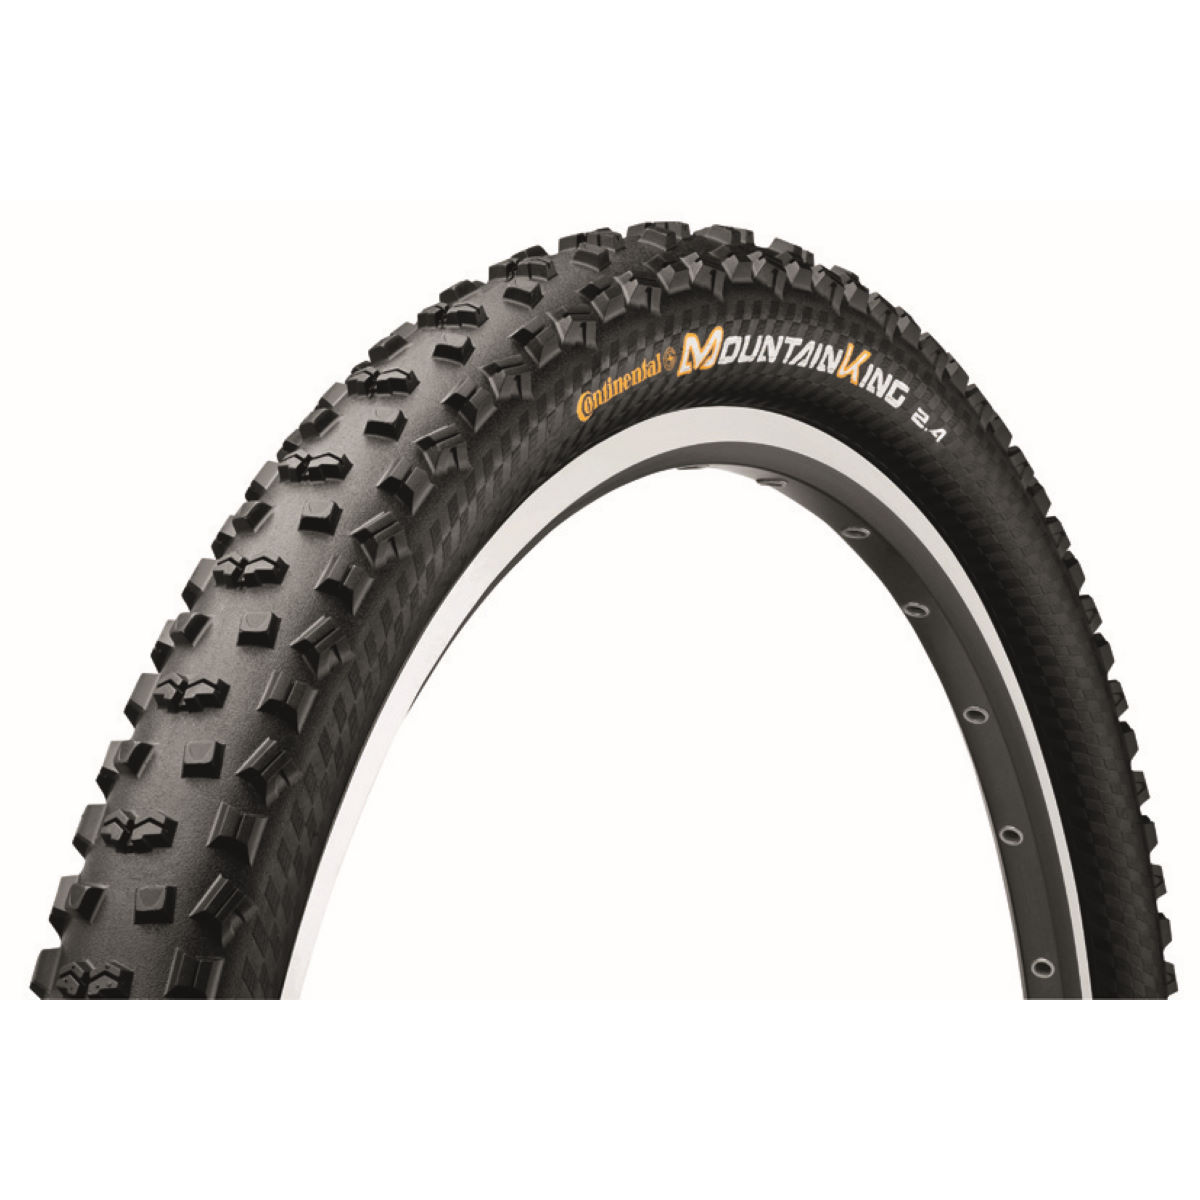 Pneu VTT Continental Mountain King II - 2.4 27.5'' Noir Pneus